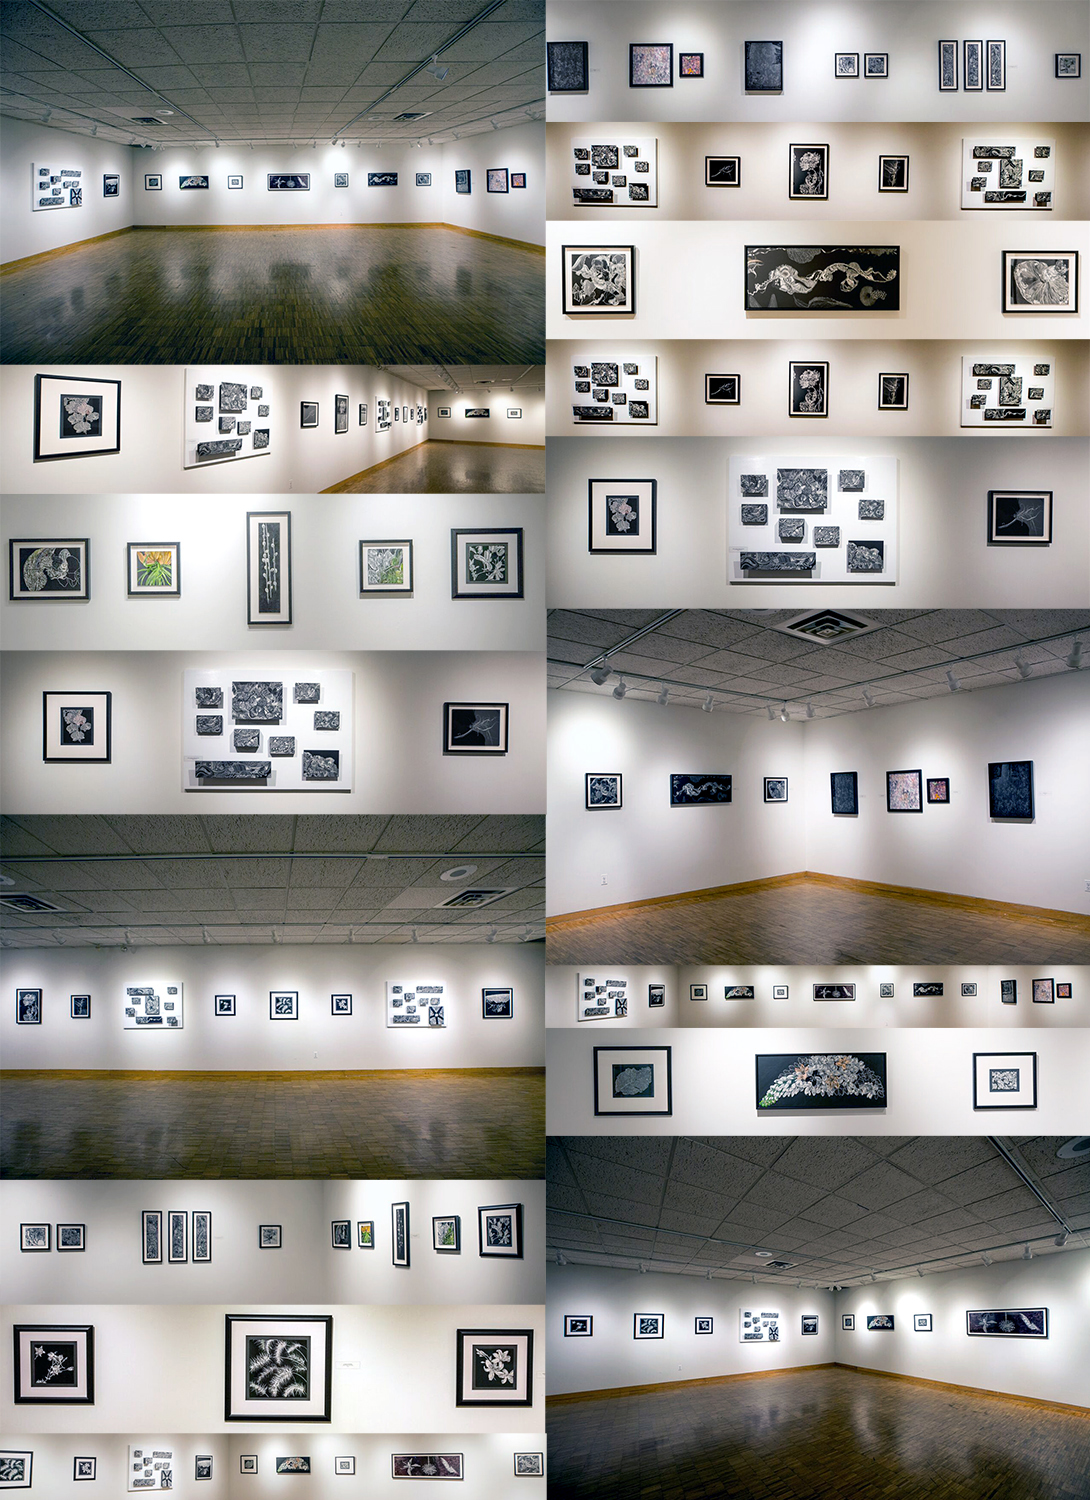 Compilation of Photographs by Shirley Nannini of Storylines Exhibition by Lisa Goesling